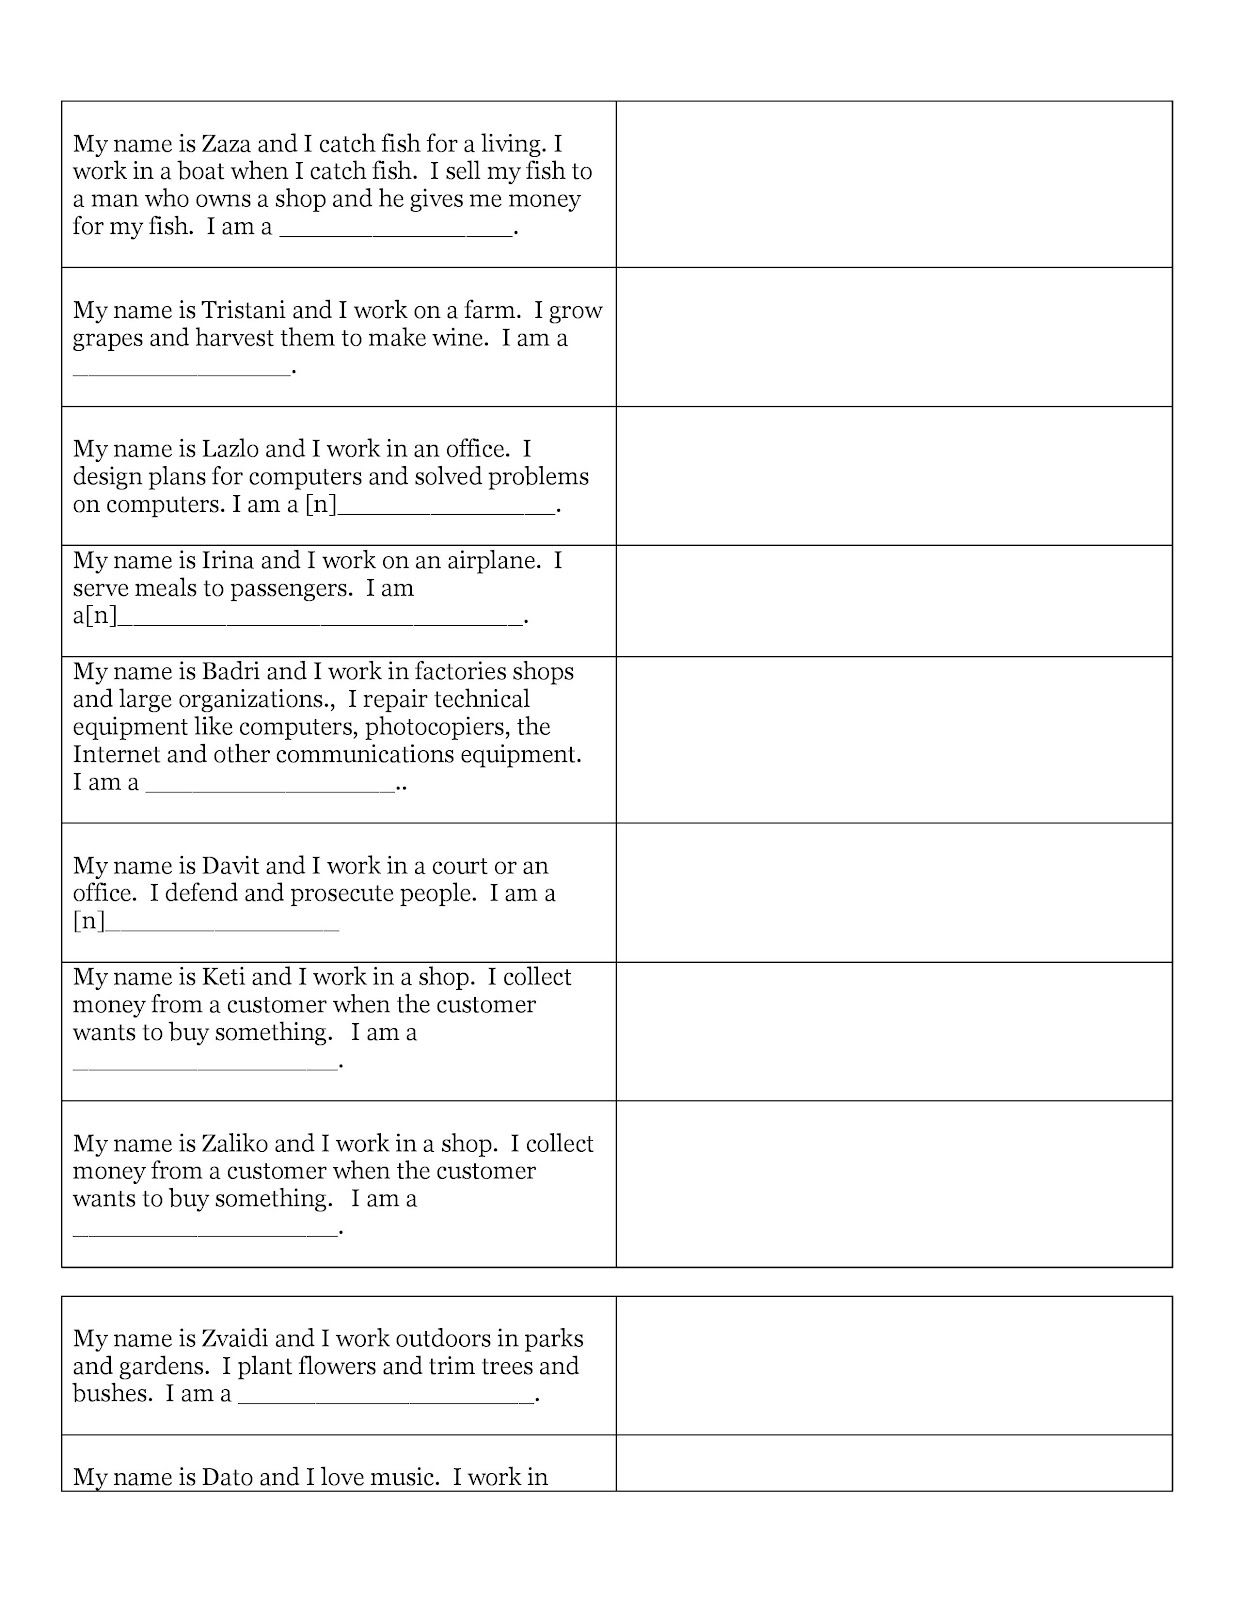 14 Best Images Of Jobs And Occupations Worksheets Word Scramble